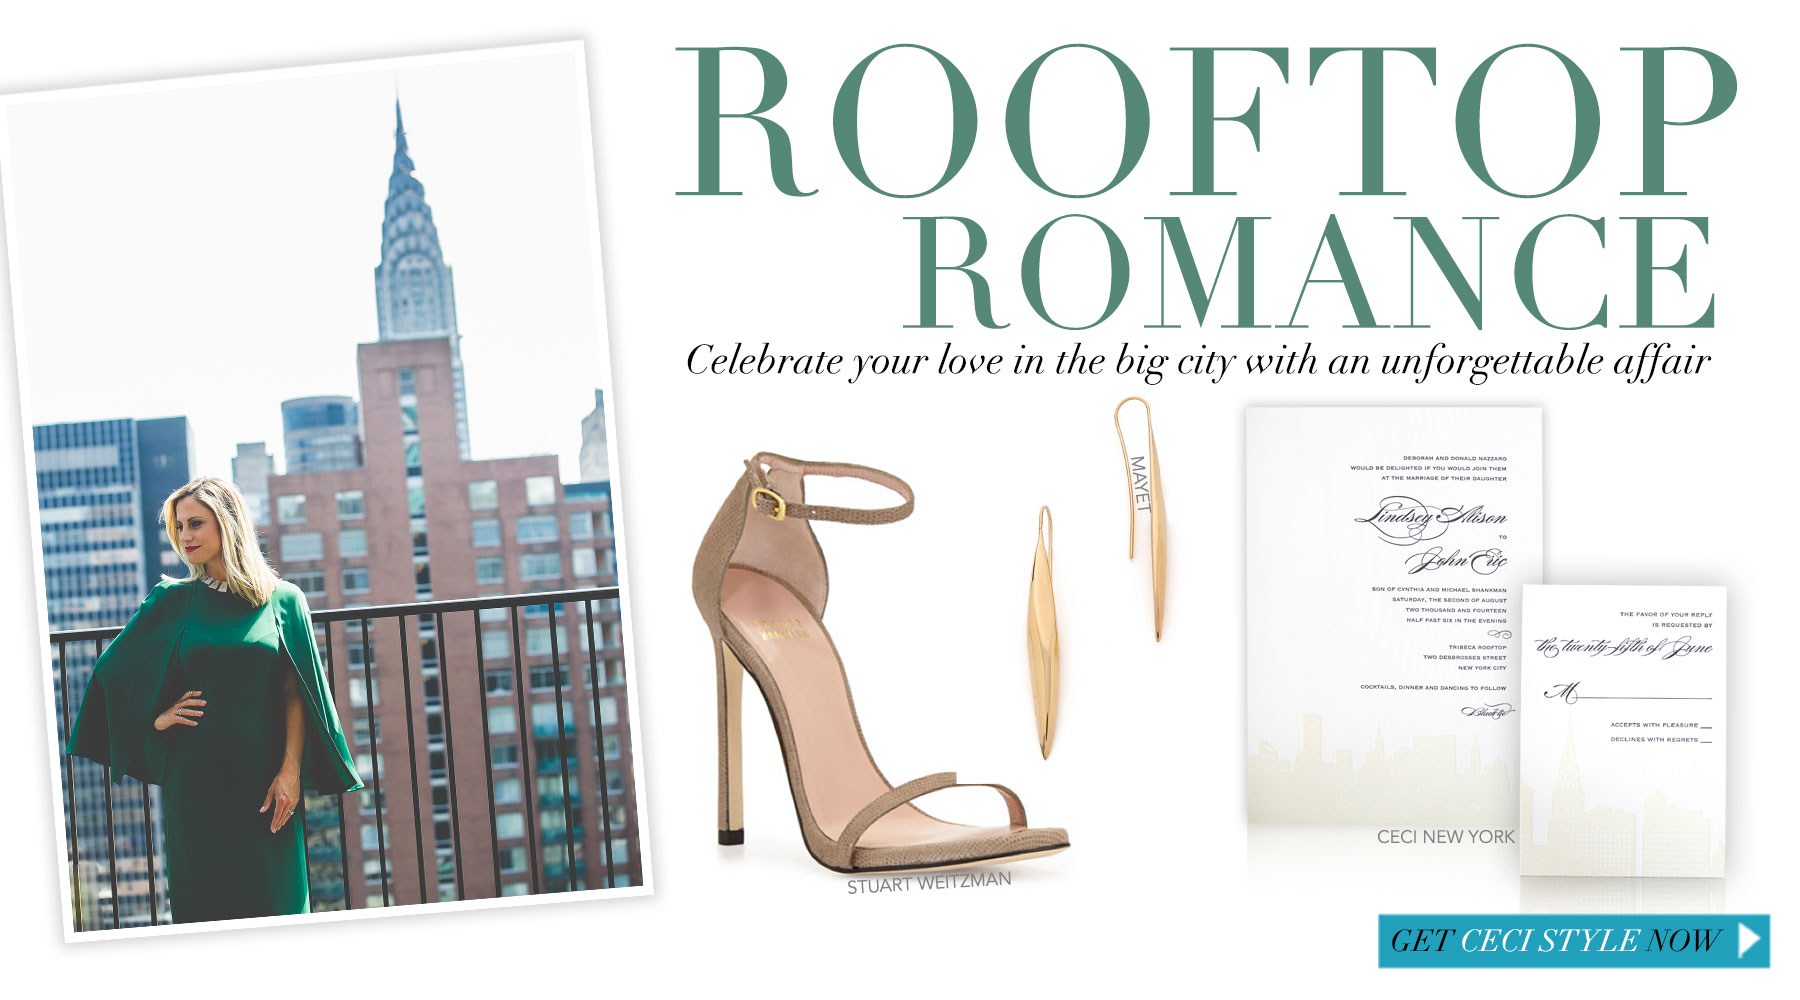 Rooftop Romance - Here's to celebrating love in the big city!